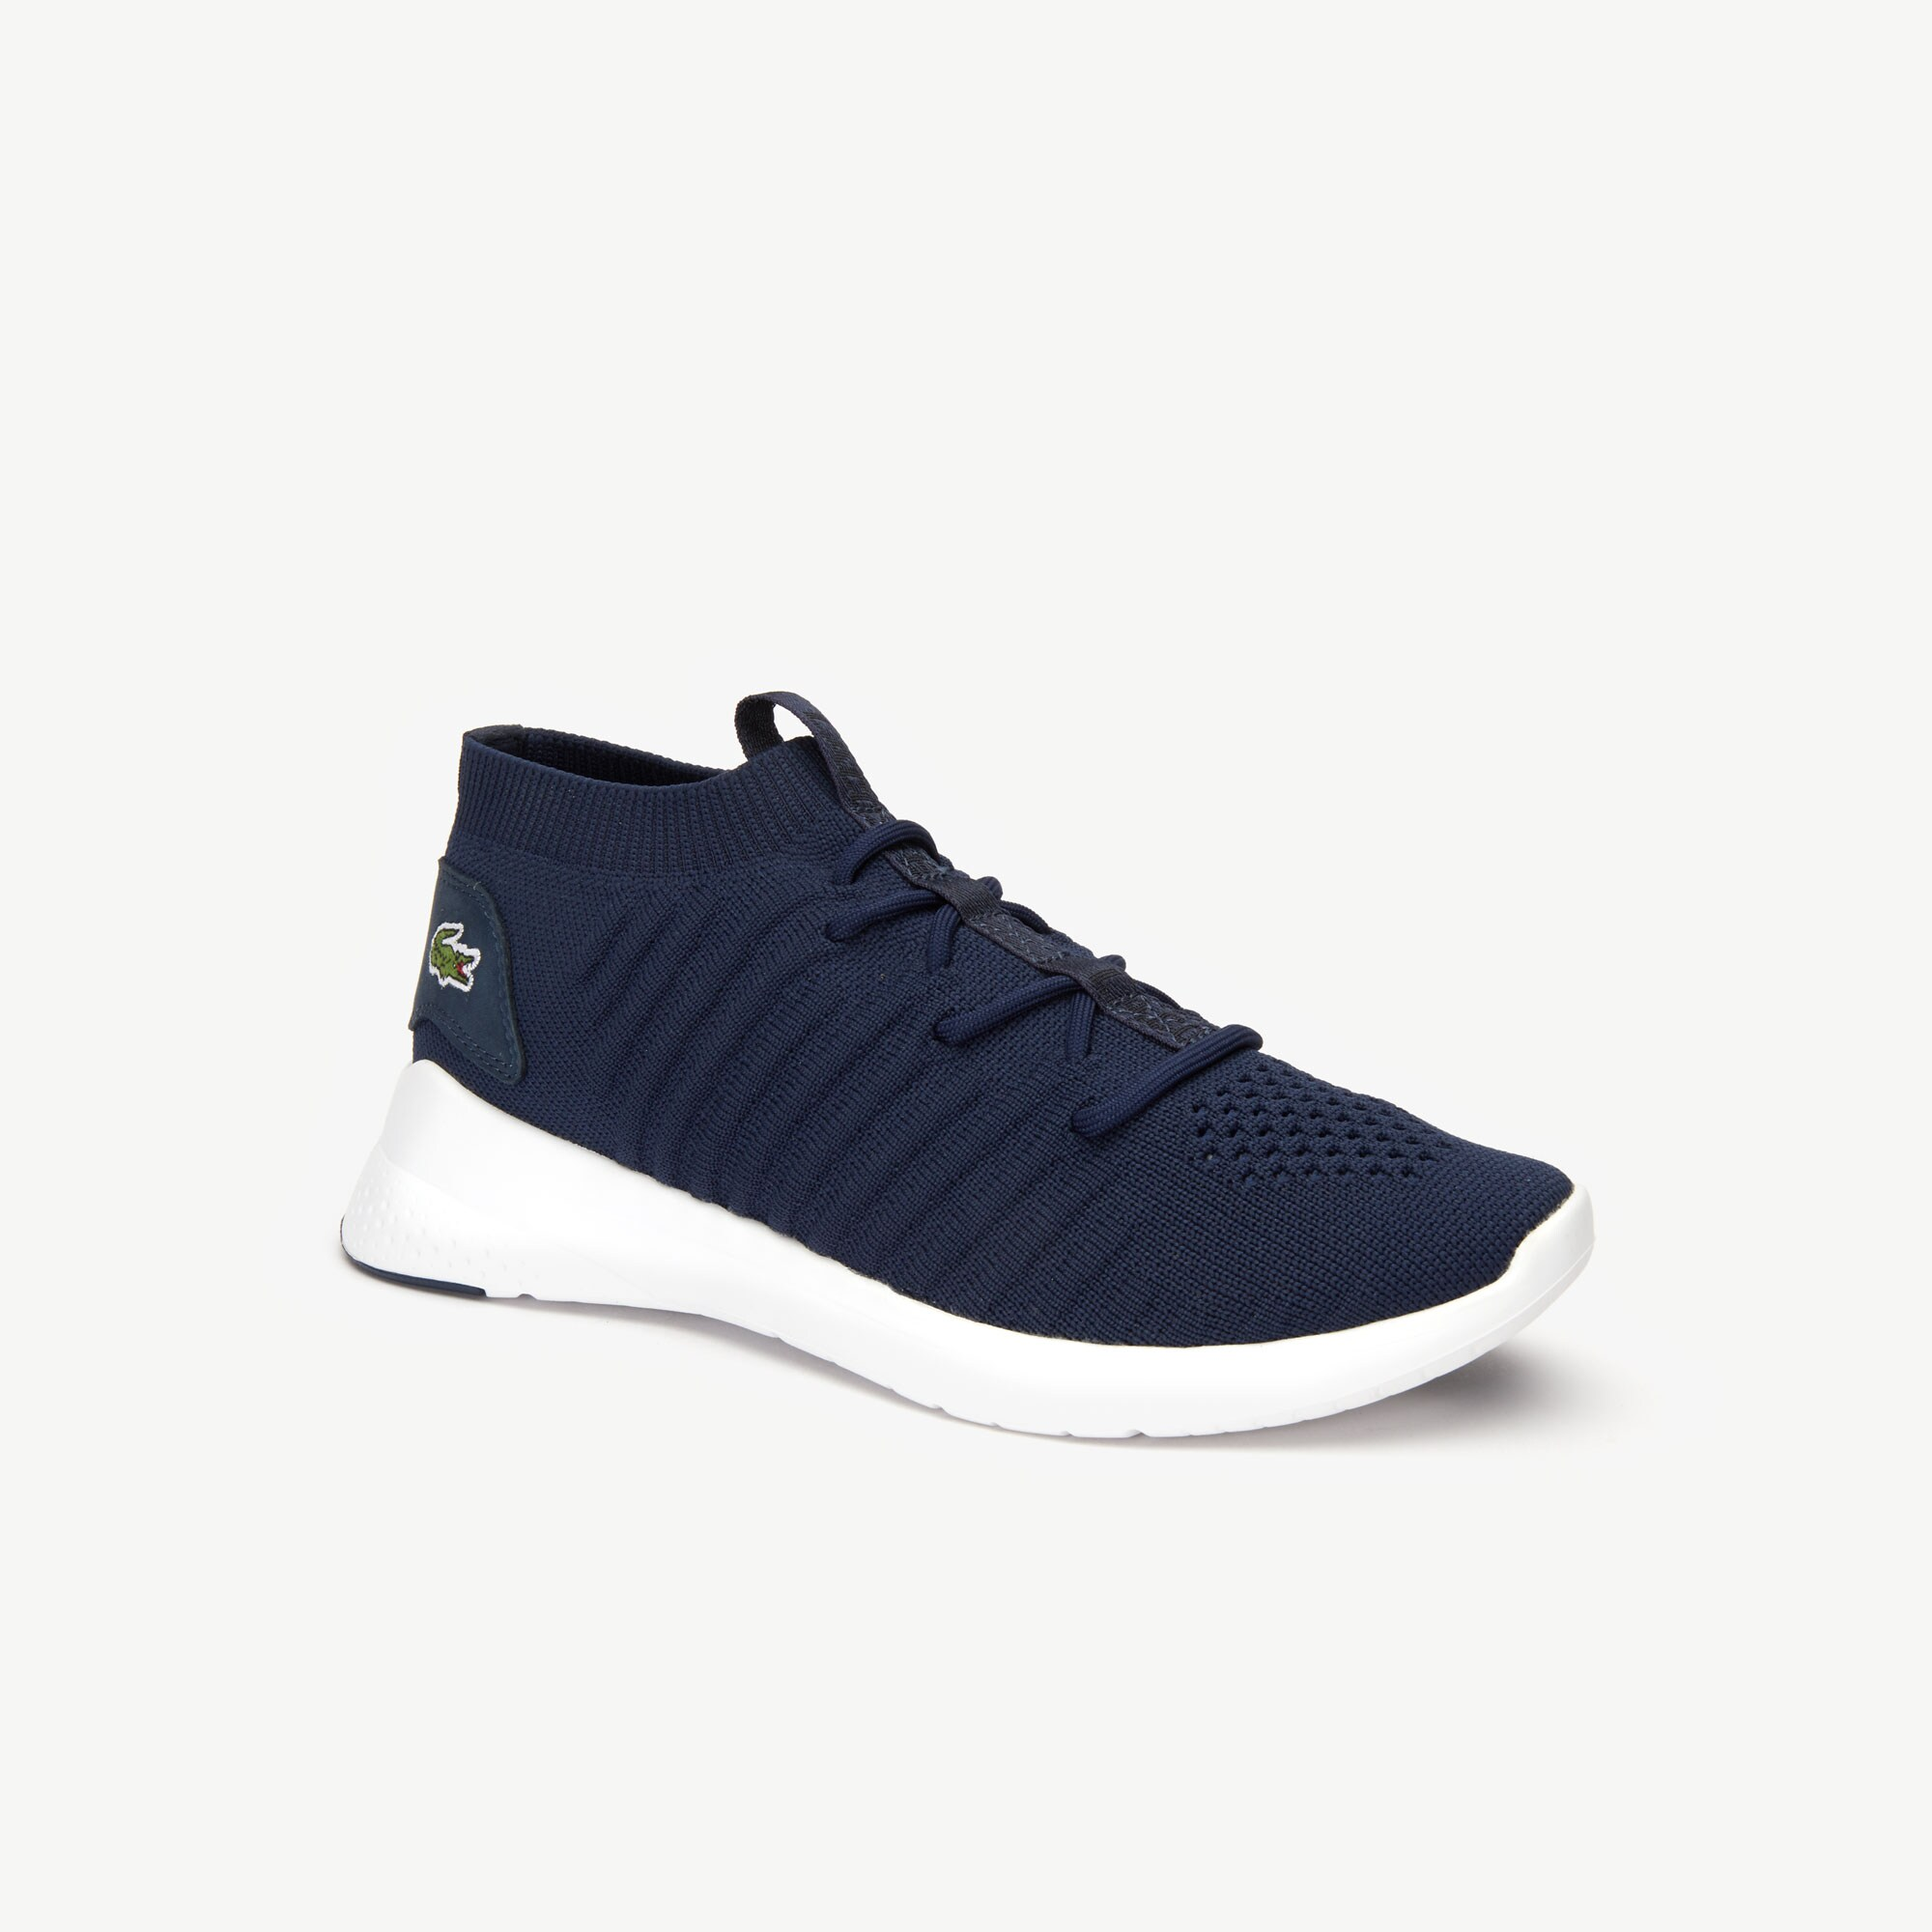 brand new da9d0 d6077 Lacoste shoes for women: Boots, Trainers, Sneakers | LACOSTE